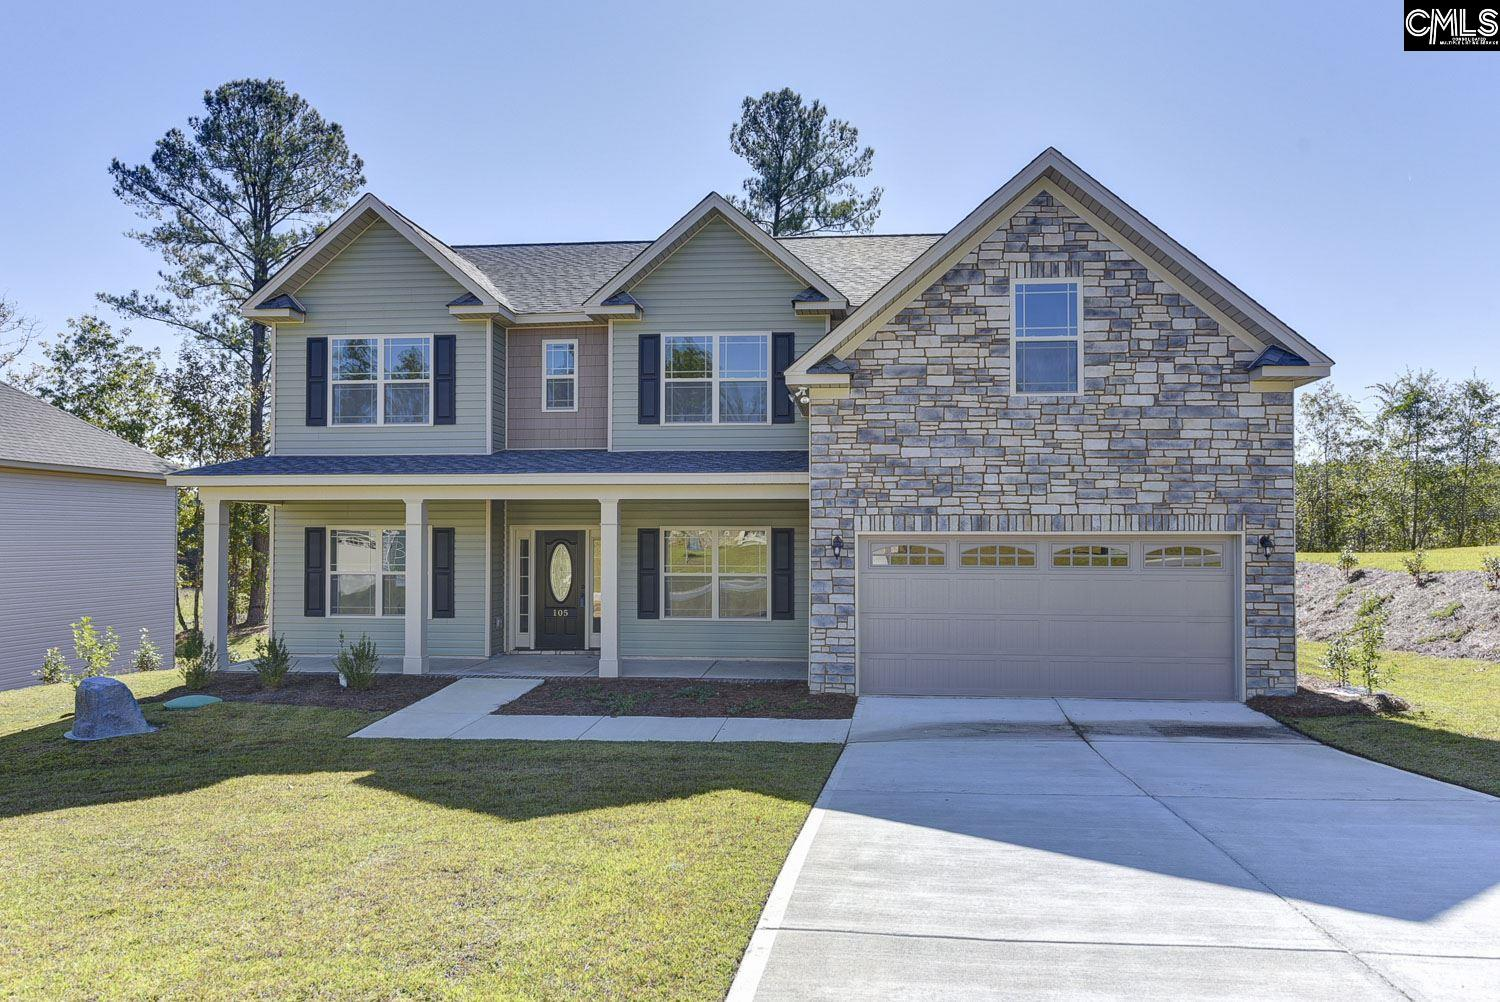 105 Tall Pines Gaston, SC 29053